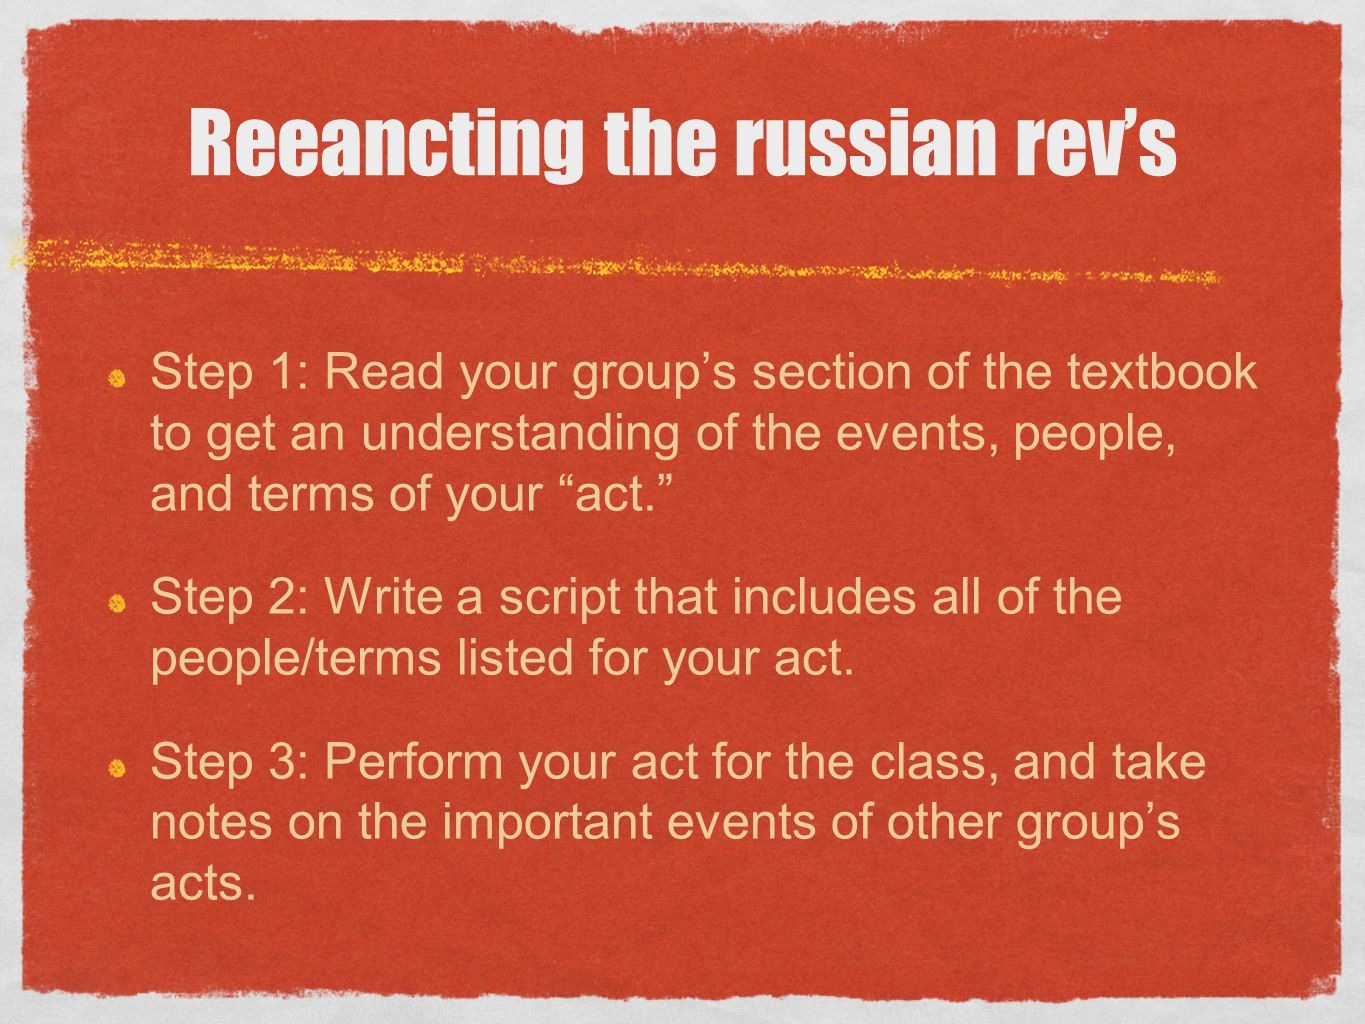 """Reeancting the russian rev's Step 1: Read your group's section of the textbook to get an understanding of the events, people, and terms of your """"act."""""""